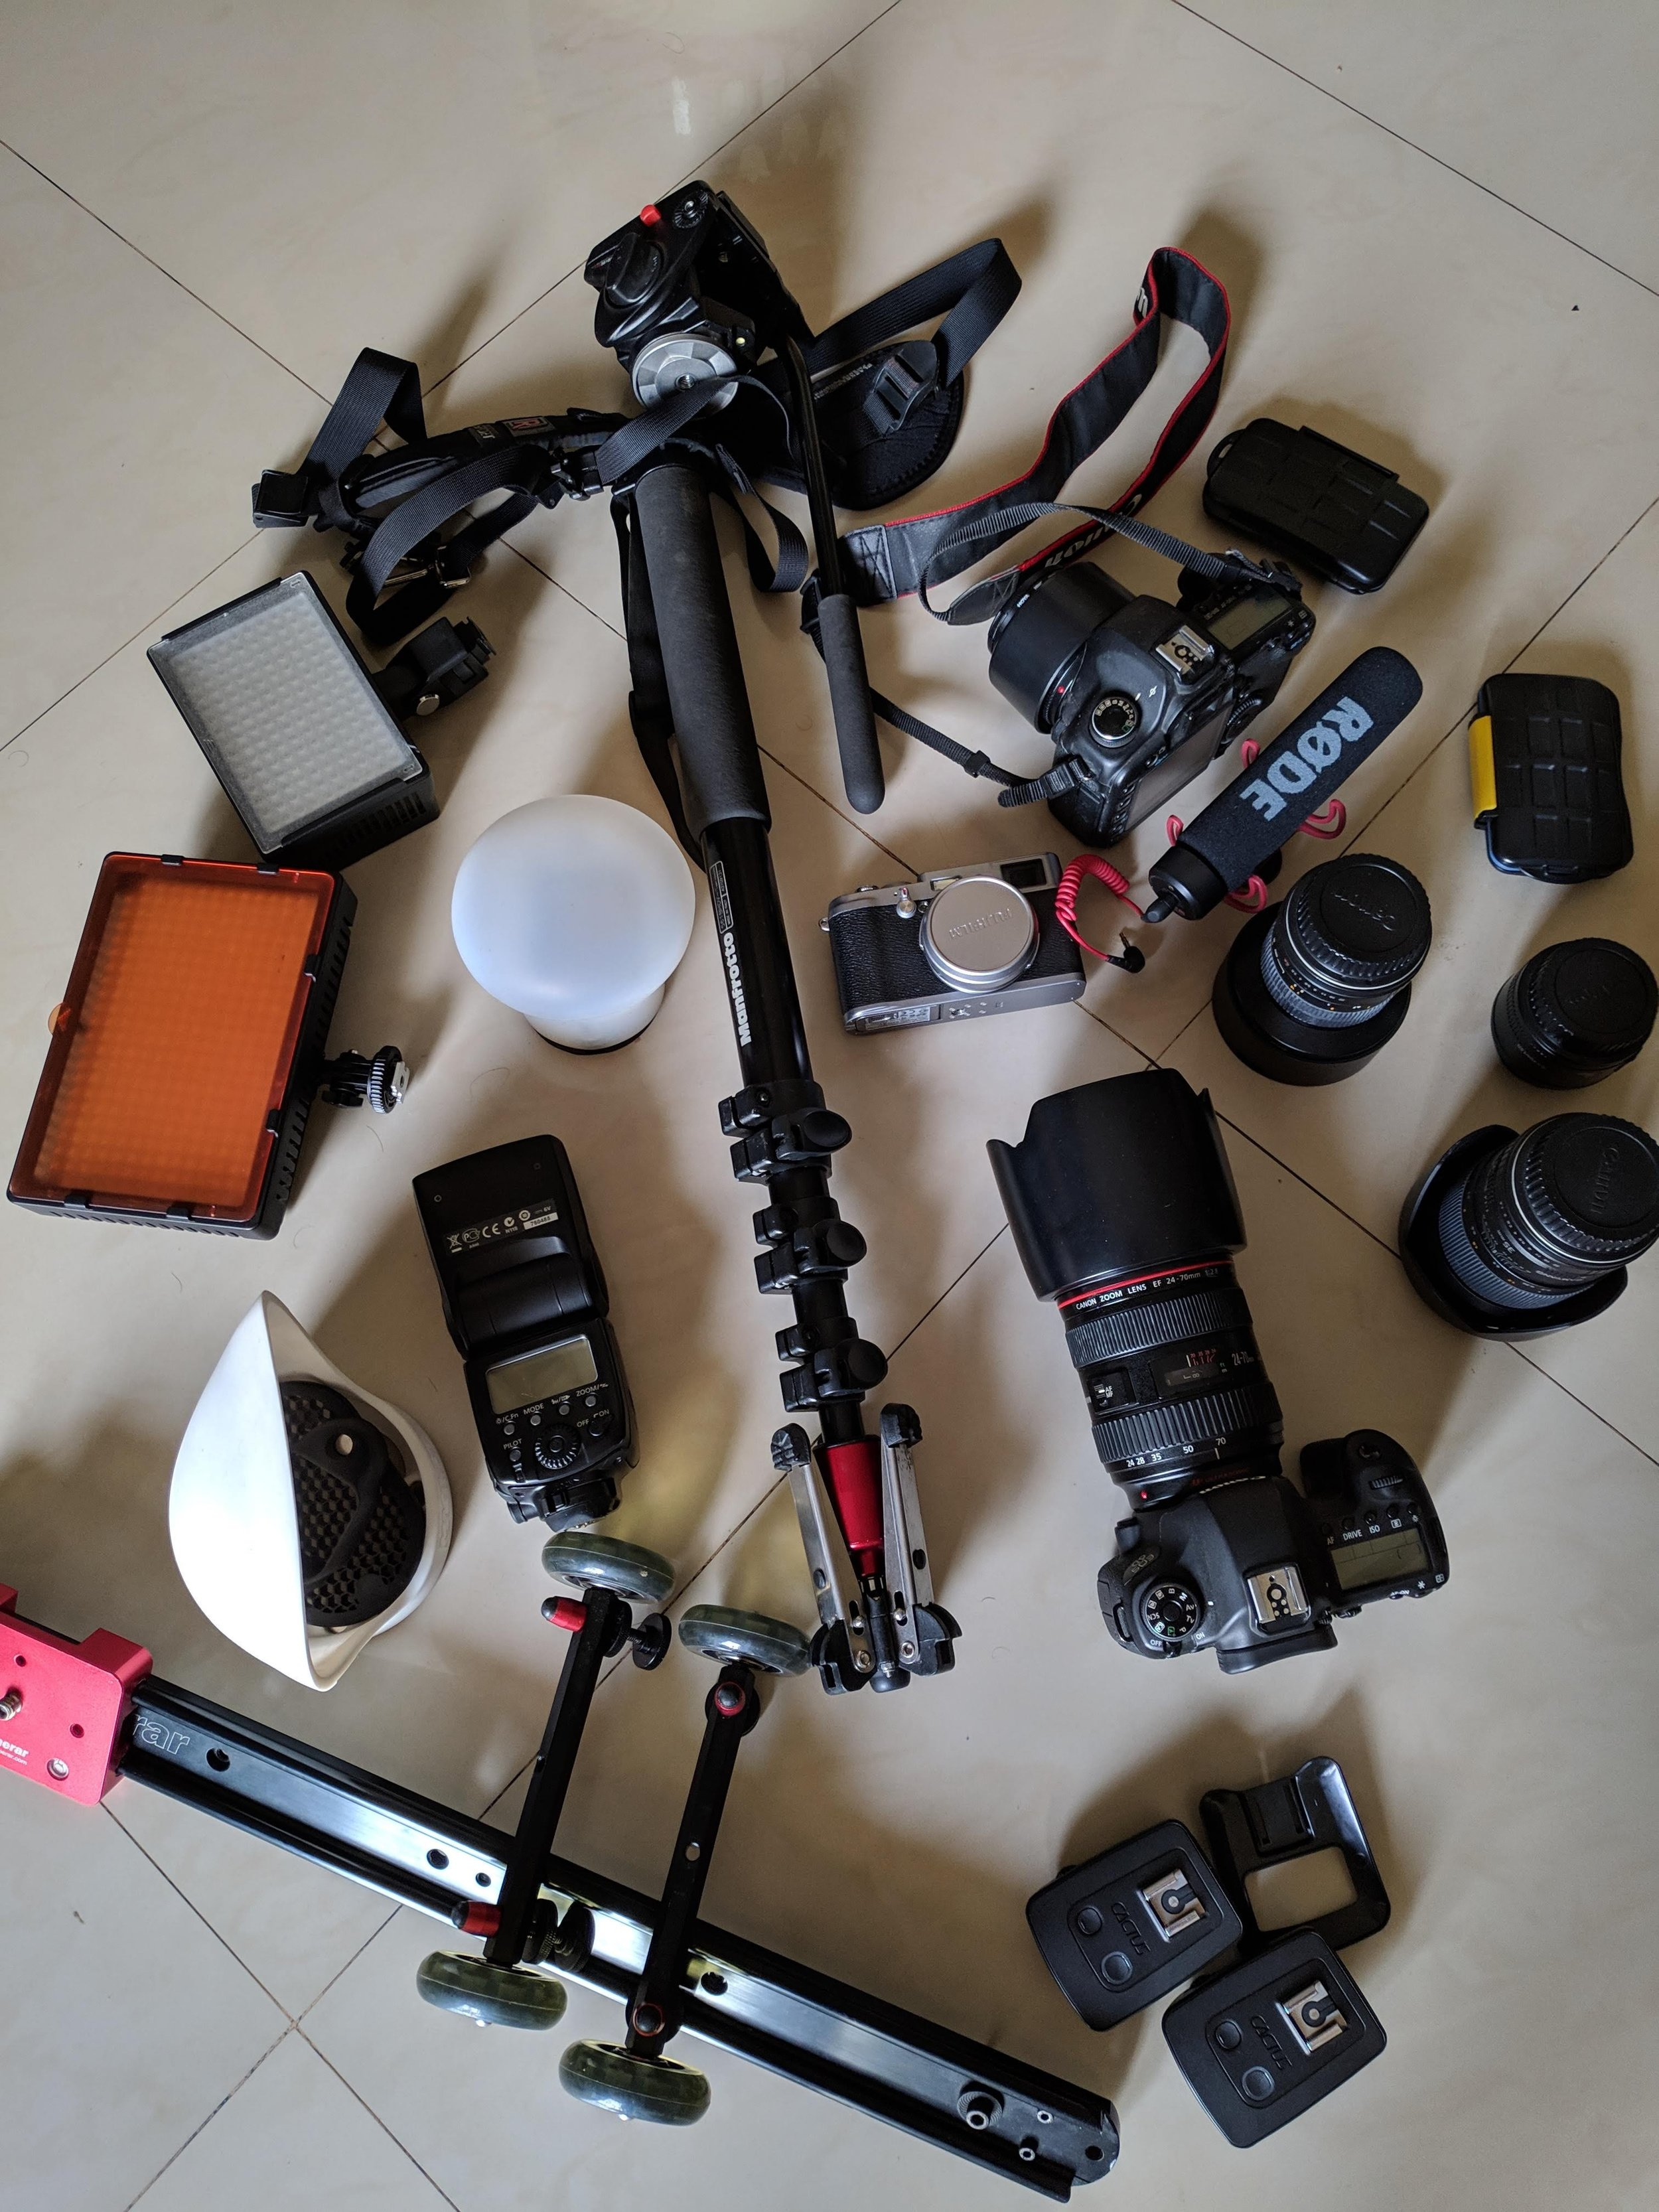 Enough gear to shoot nice and easy,  Canon  &  Fuji  cameras , A few L series Canon lens,  a Magmod flash system ,  Manfrotto Monopod , a slider, a couple of led lights, triggers,  a rode mic  and we are good to roll